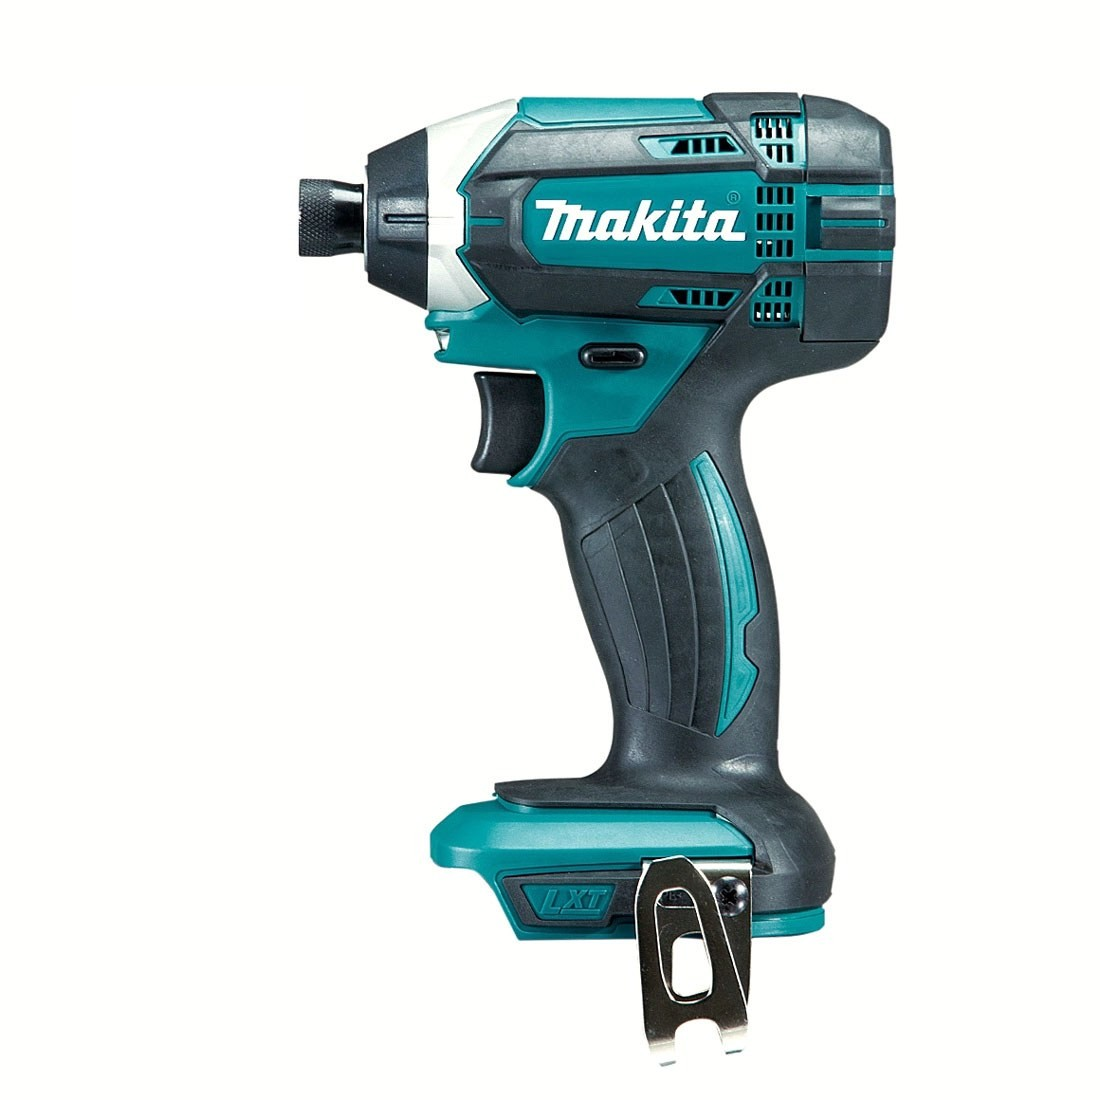 Makita dtd152z LXT 18 V impact driver body with 2 x 5ah Batteries /& Charger